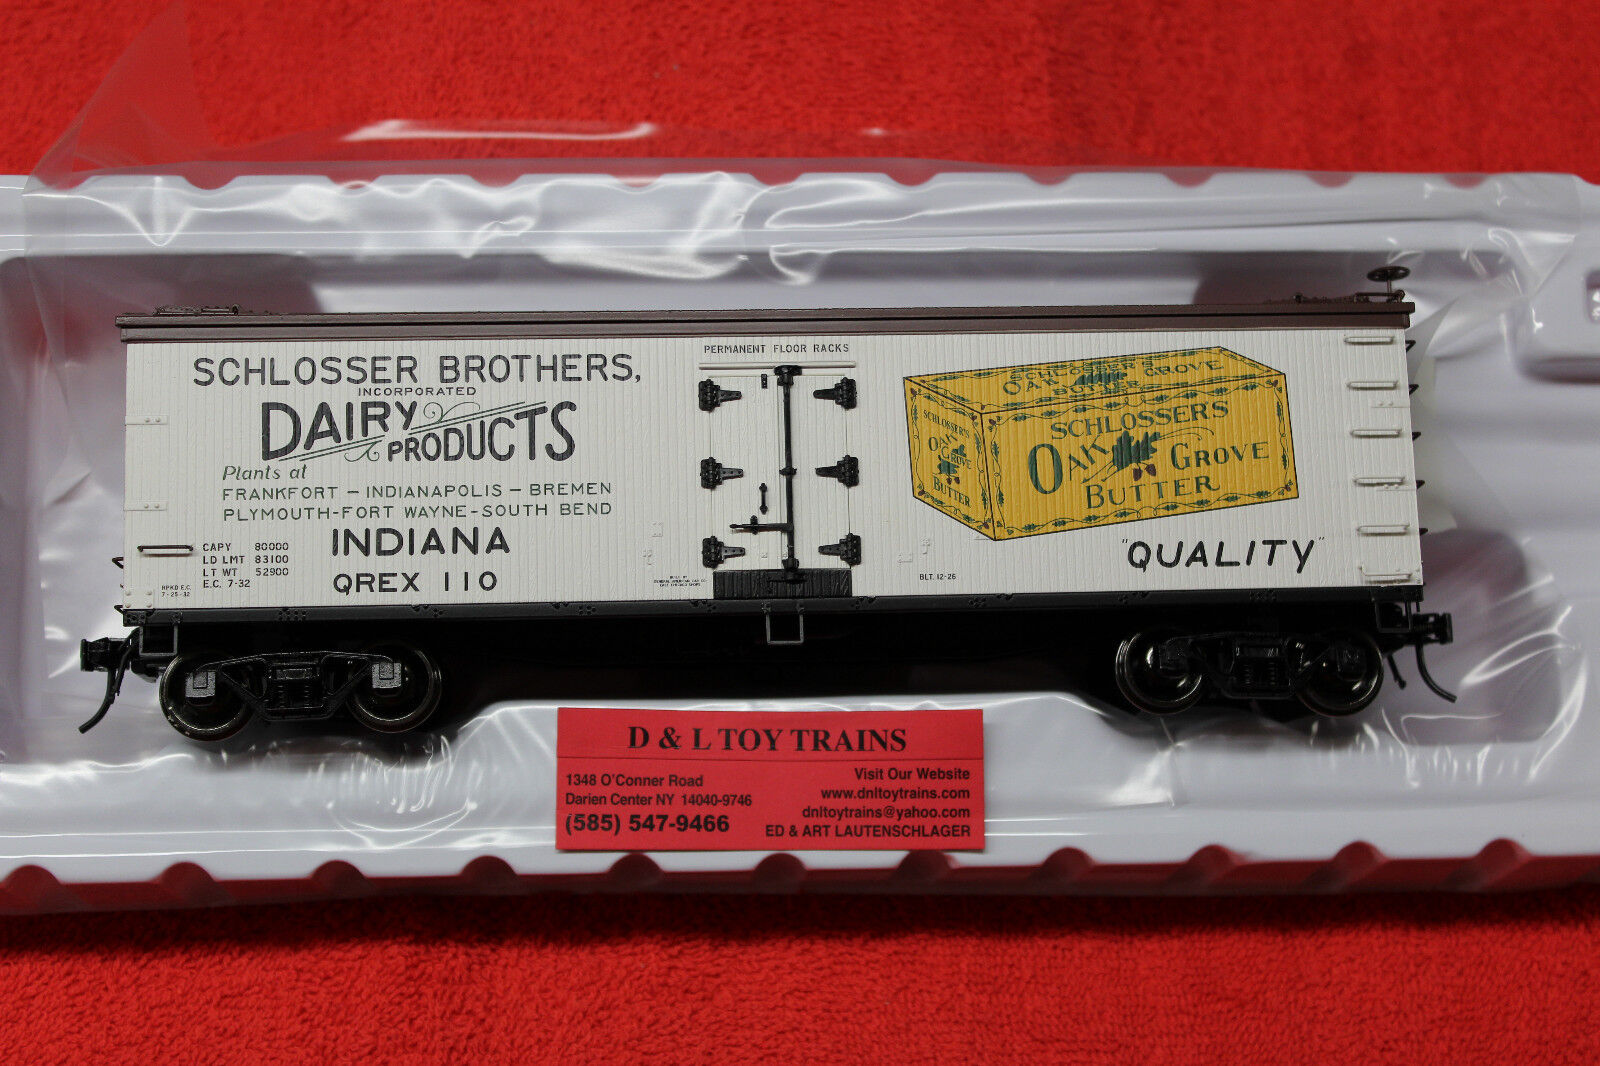 3002551 Schlosser Brothers 40' Wood Side Reefer Car 2 Rail NEW IN BOX